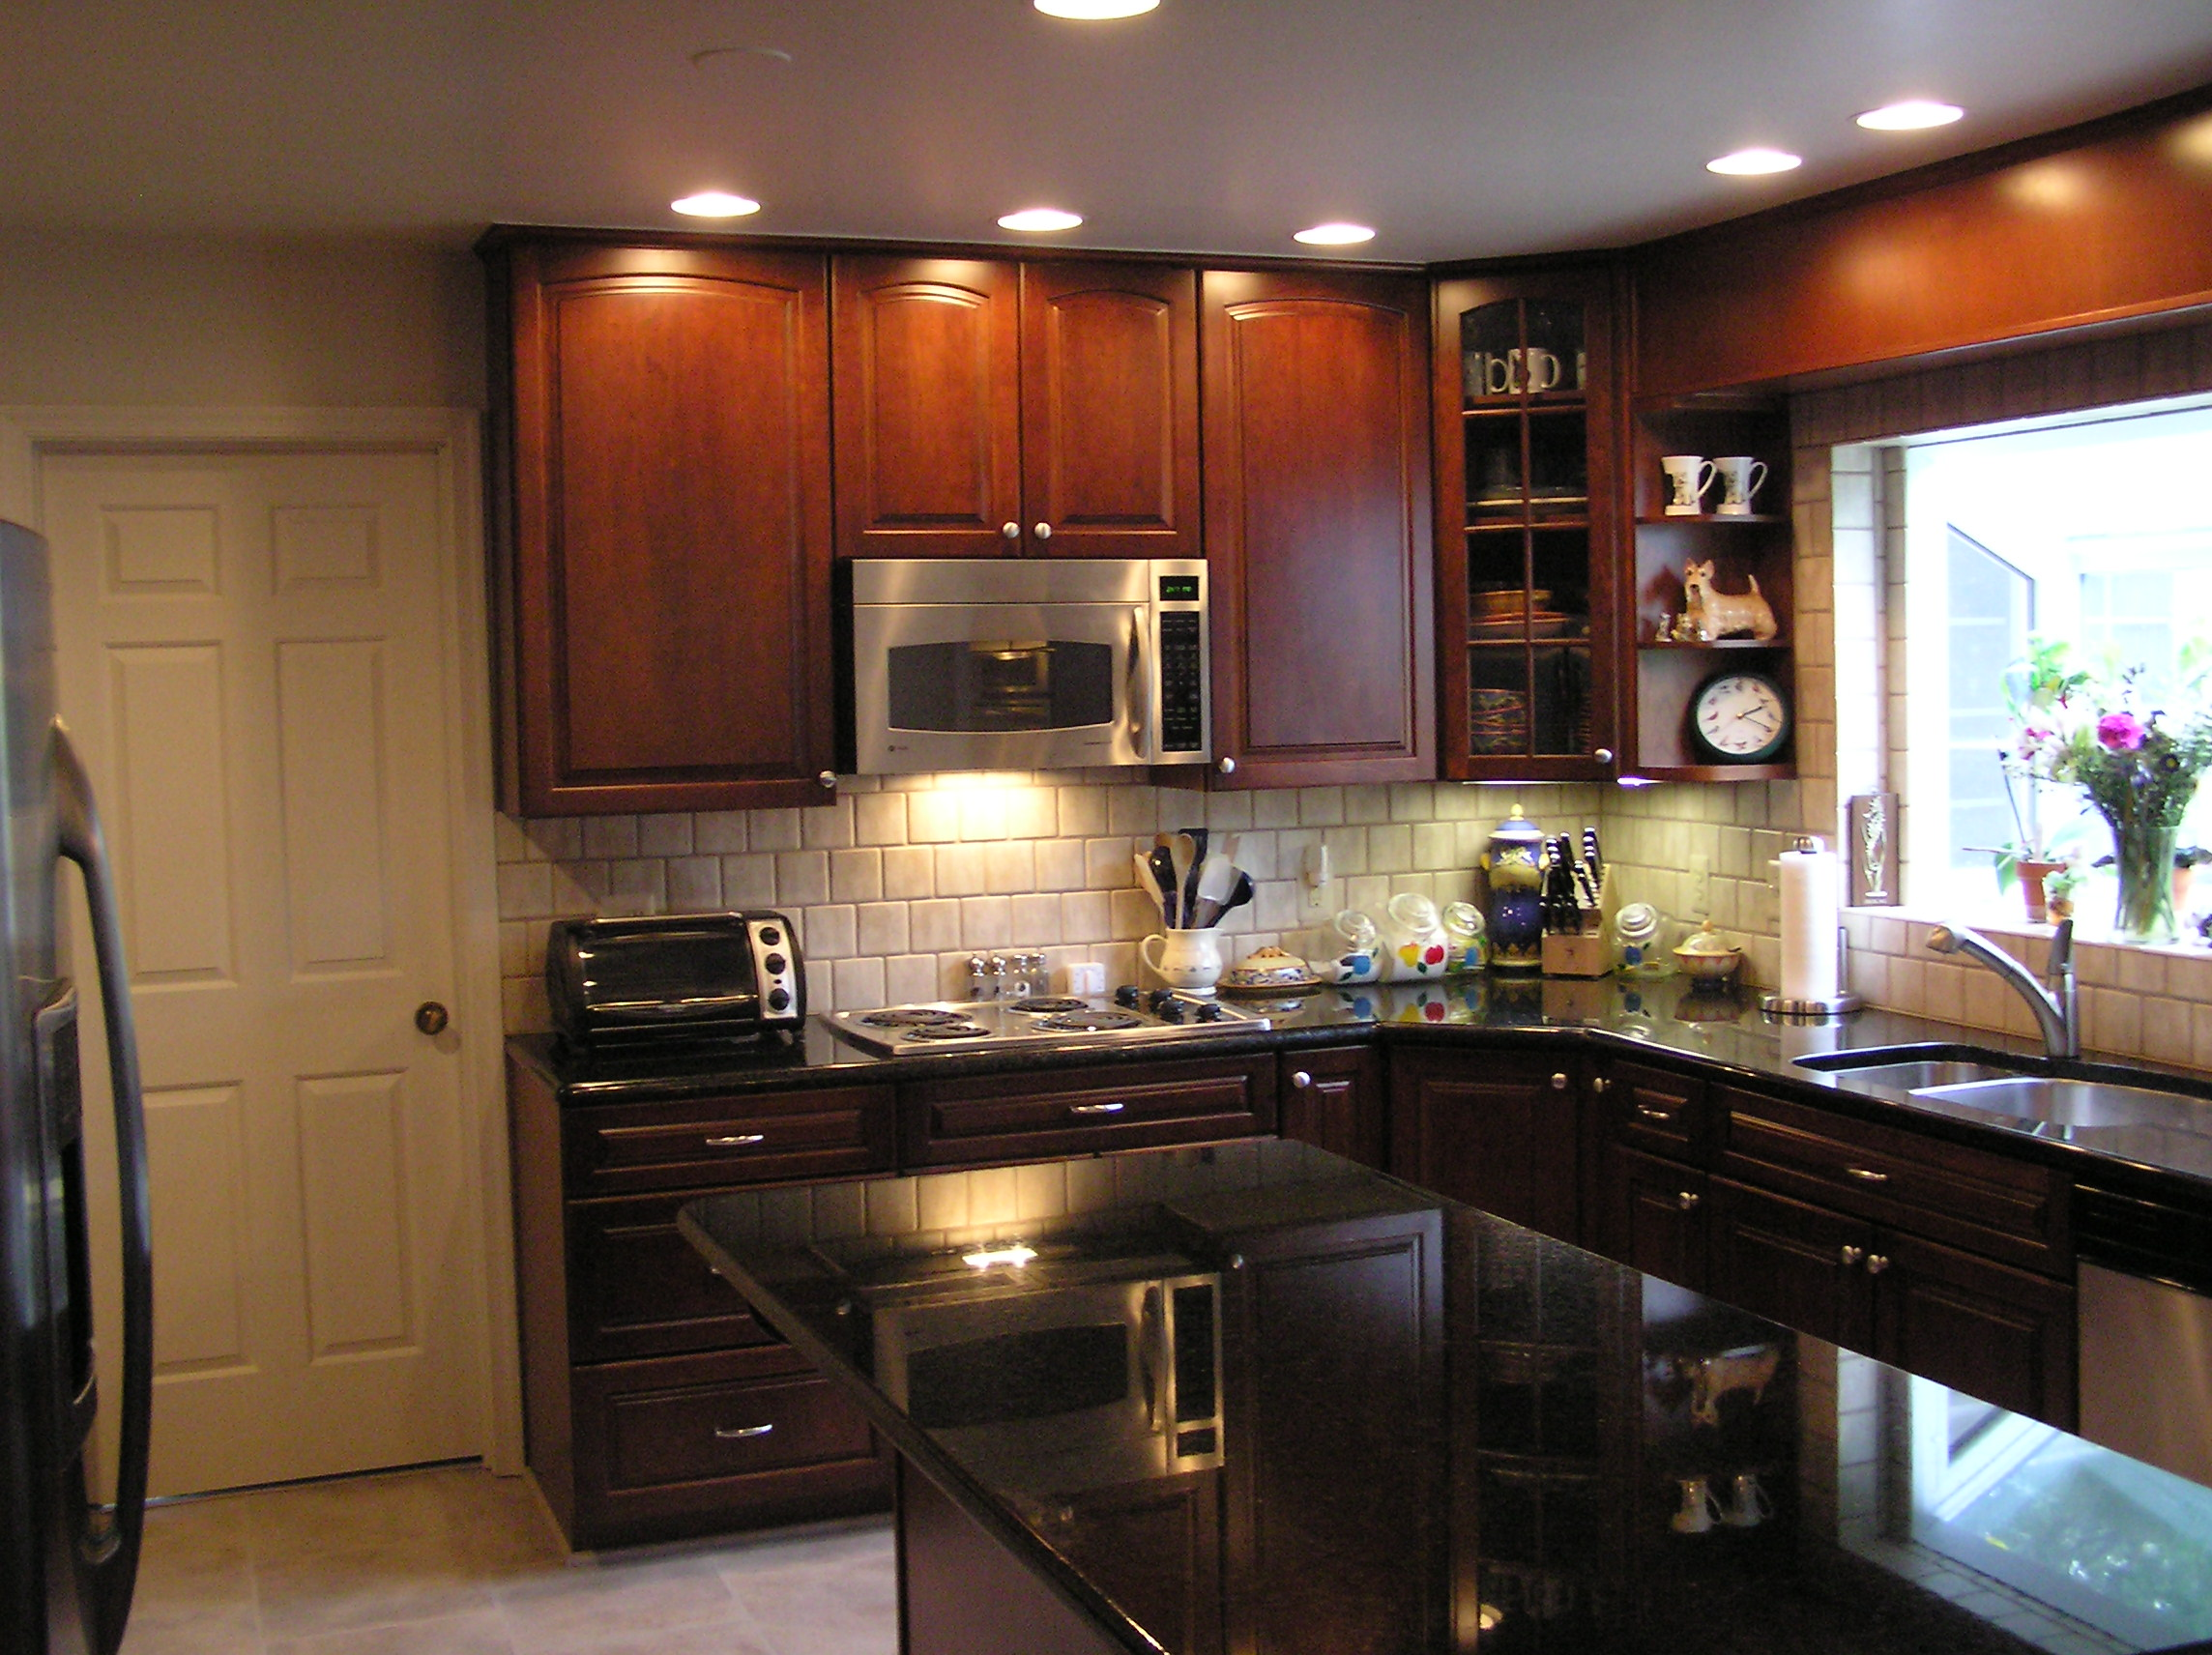 Kitchen Remodel Of Southern Style (View 8 of 10)